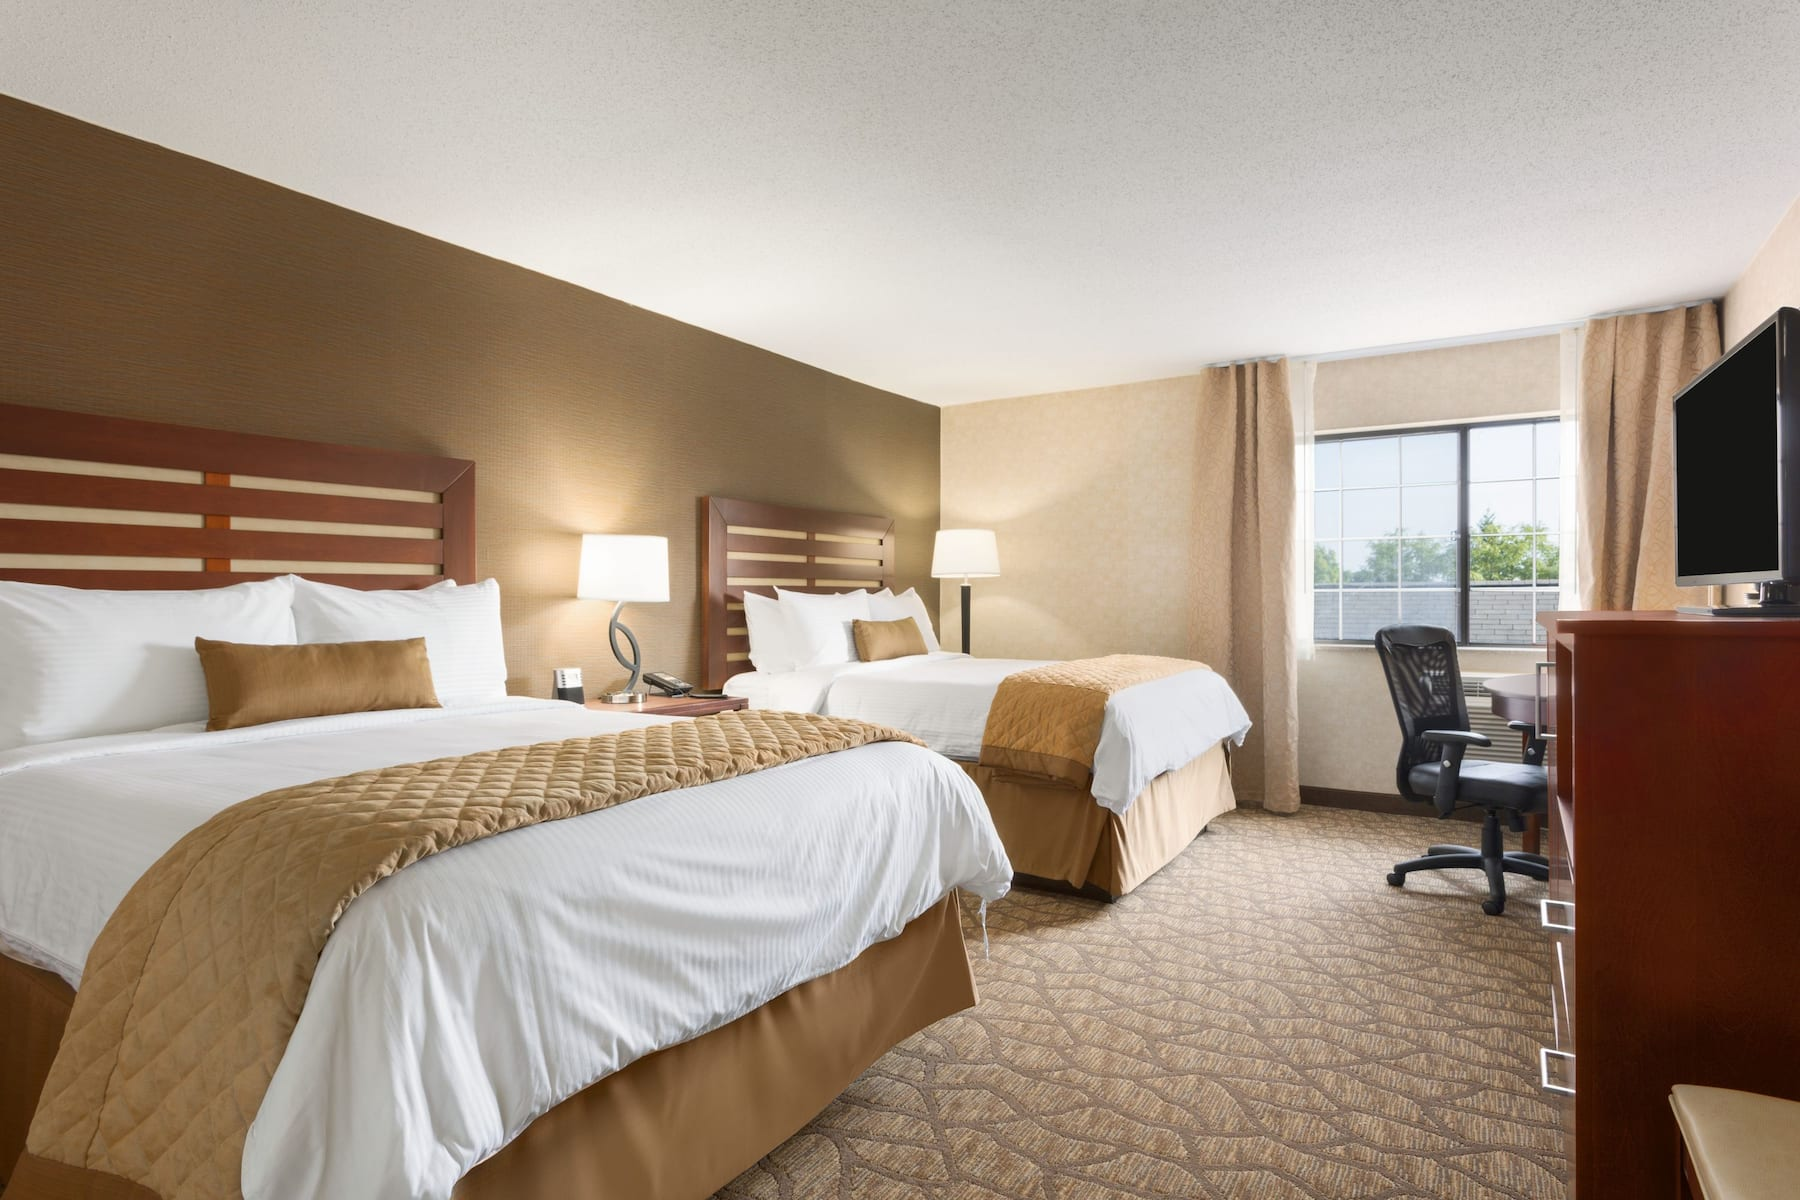 Guest Room At The Wyndham Garden Grand Rapids Airport In